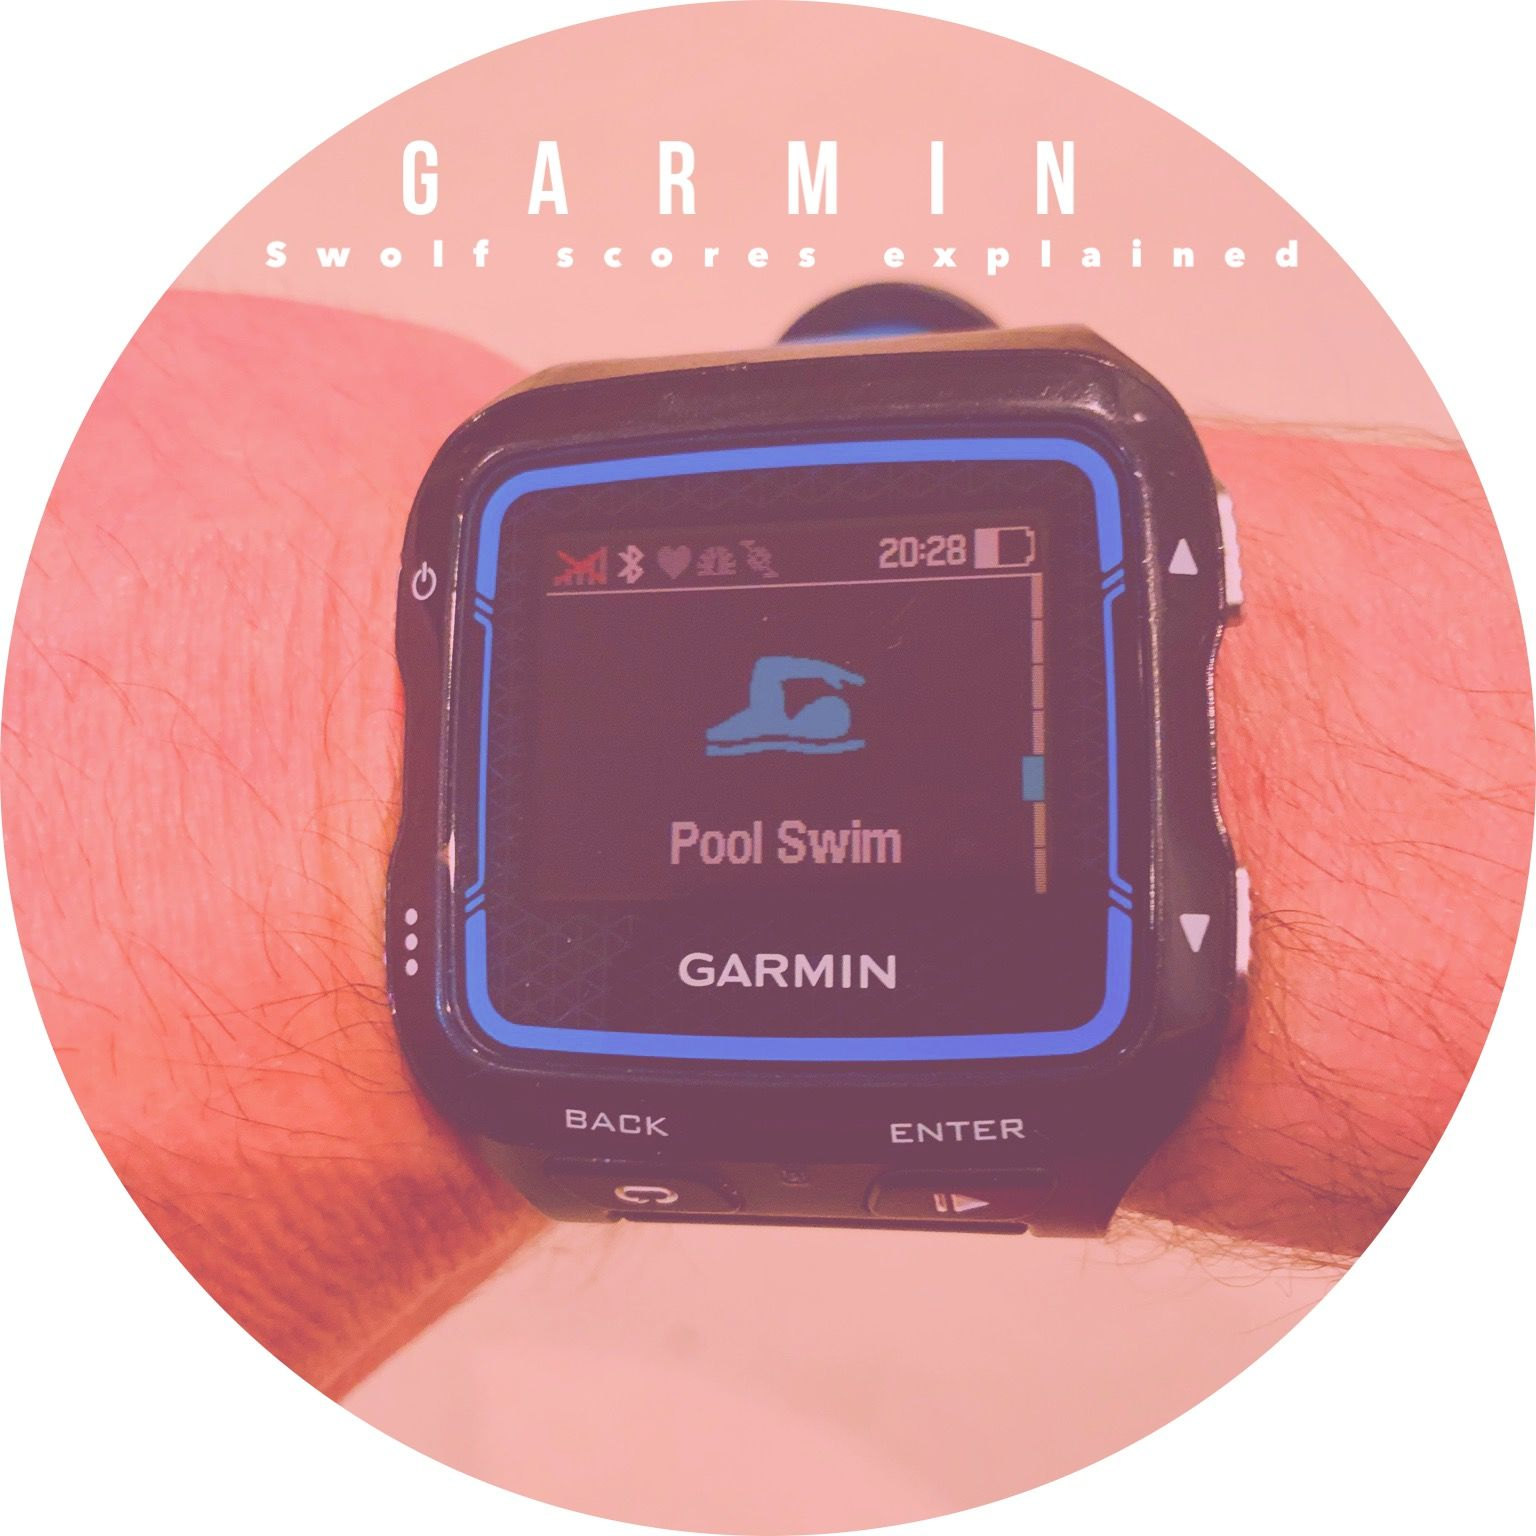 What is Garmin's SWOLF score is the topic of our blog this